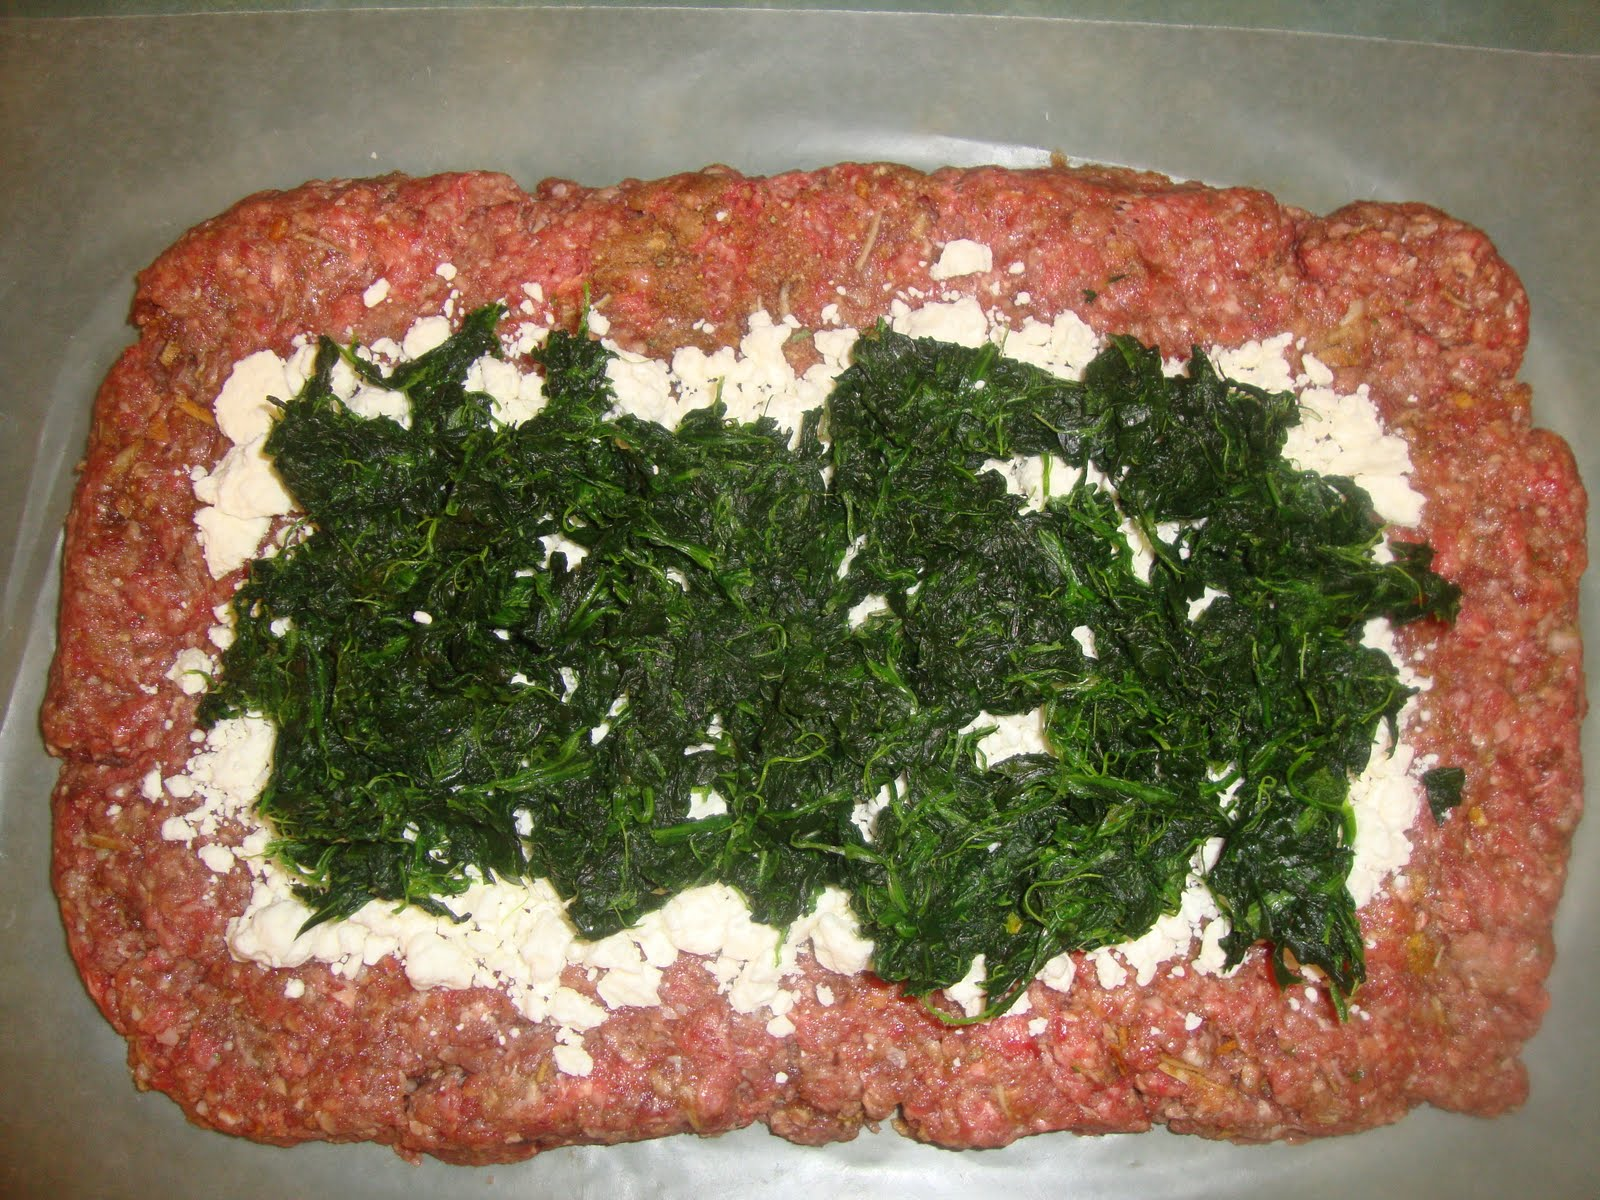 meatloaf best meatloaf meatloaf 101 my meatloaf the best meatloaf best ...